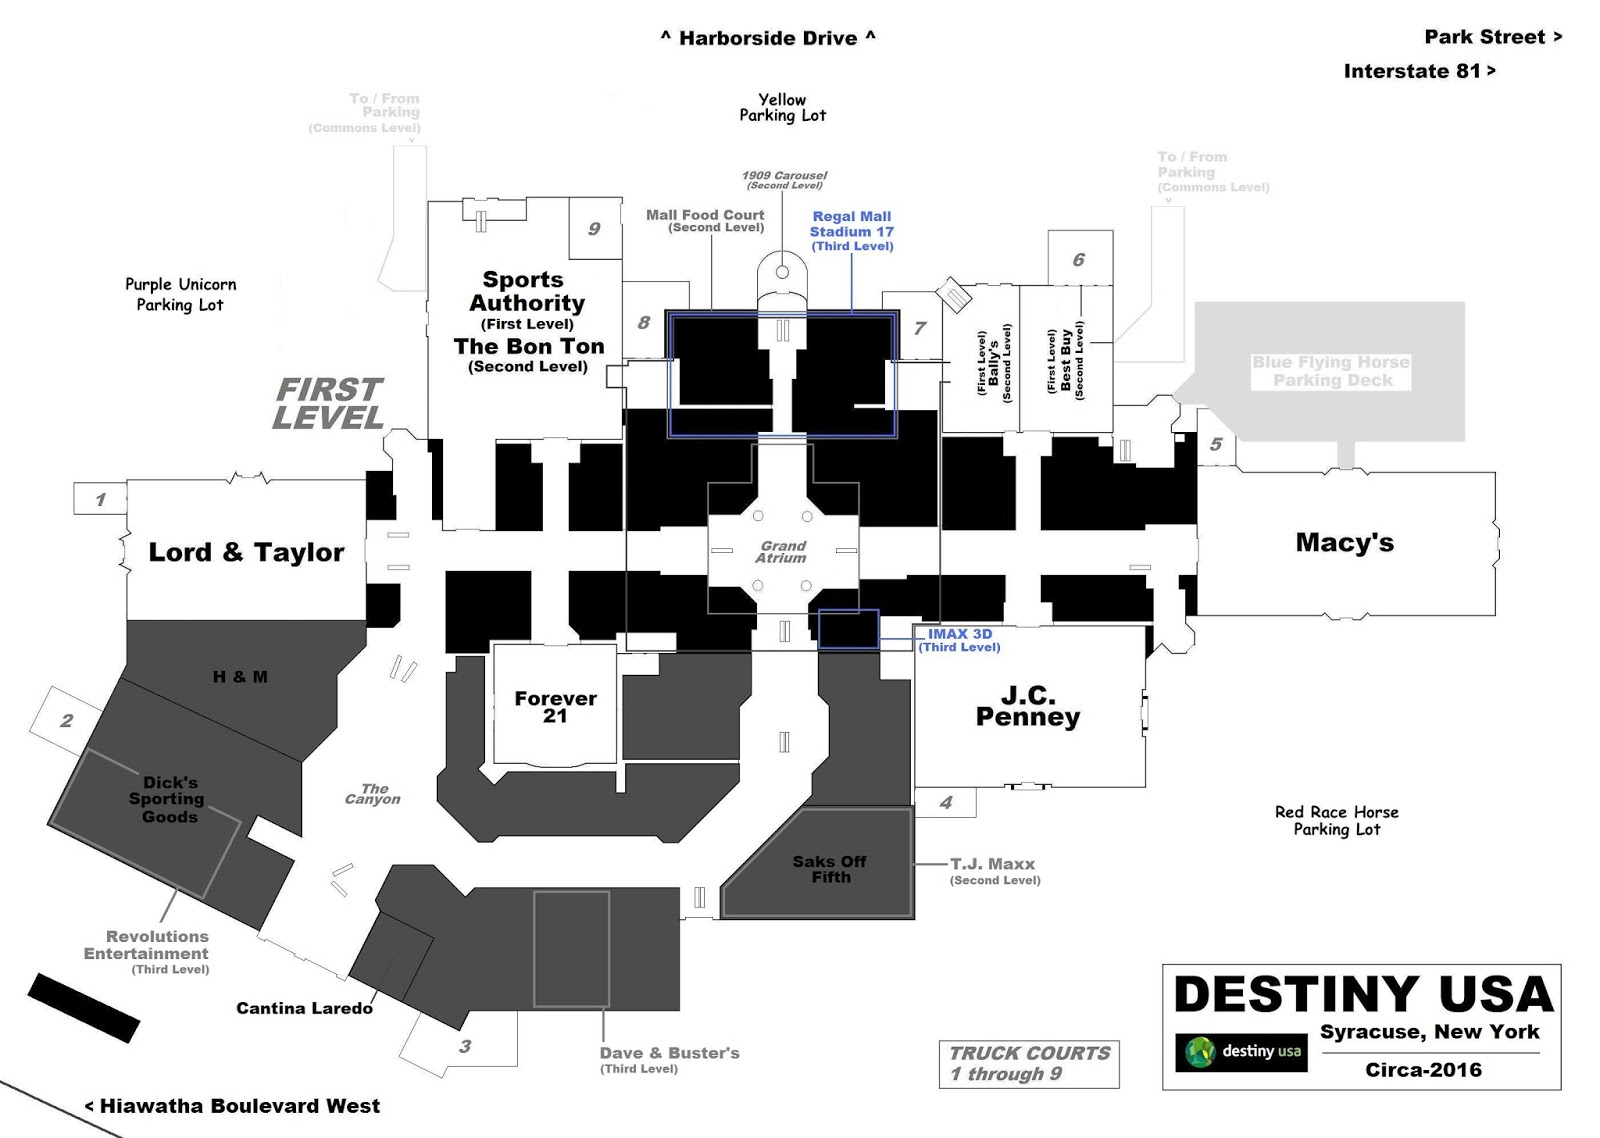 Destiny Usa Map Of Stores.Destiny Mall Store Map Related Keywords Suggestions Destiny Mall